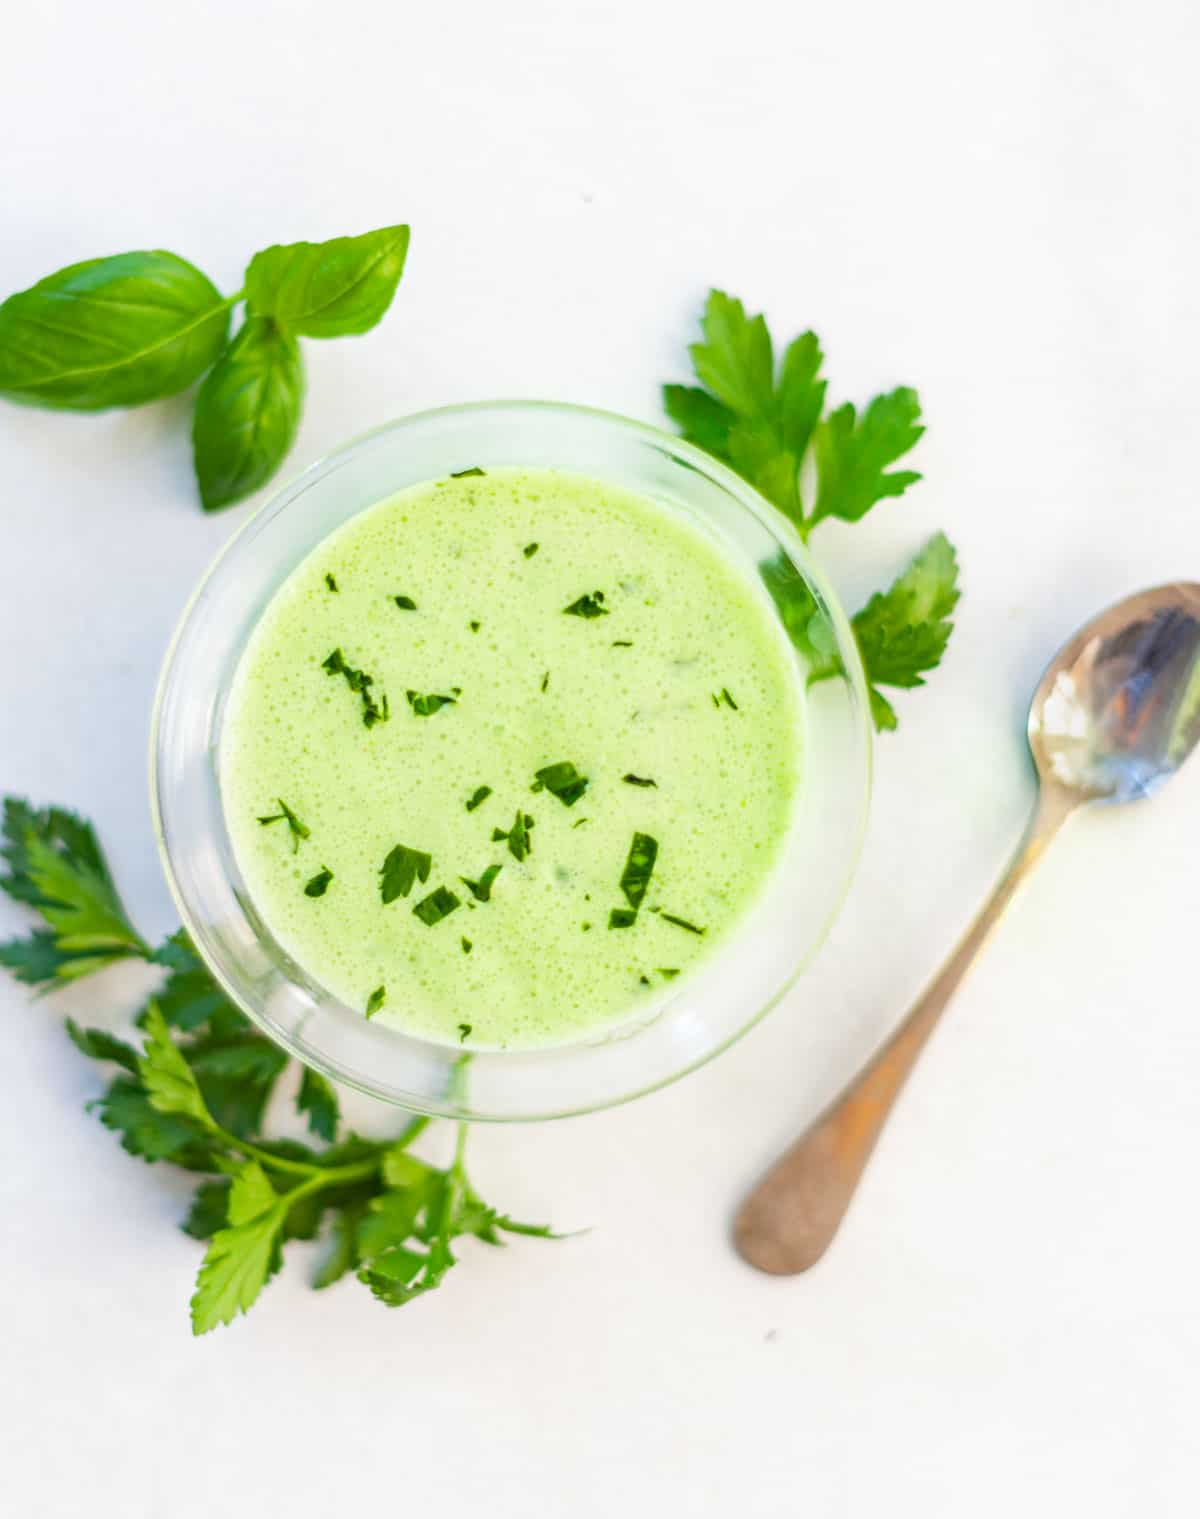 small bowl of green goddess salad dressing flecked with herbs